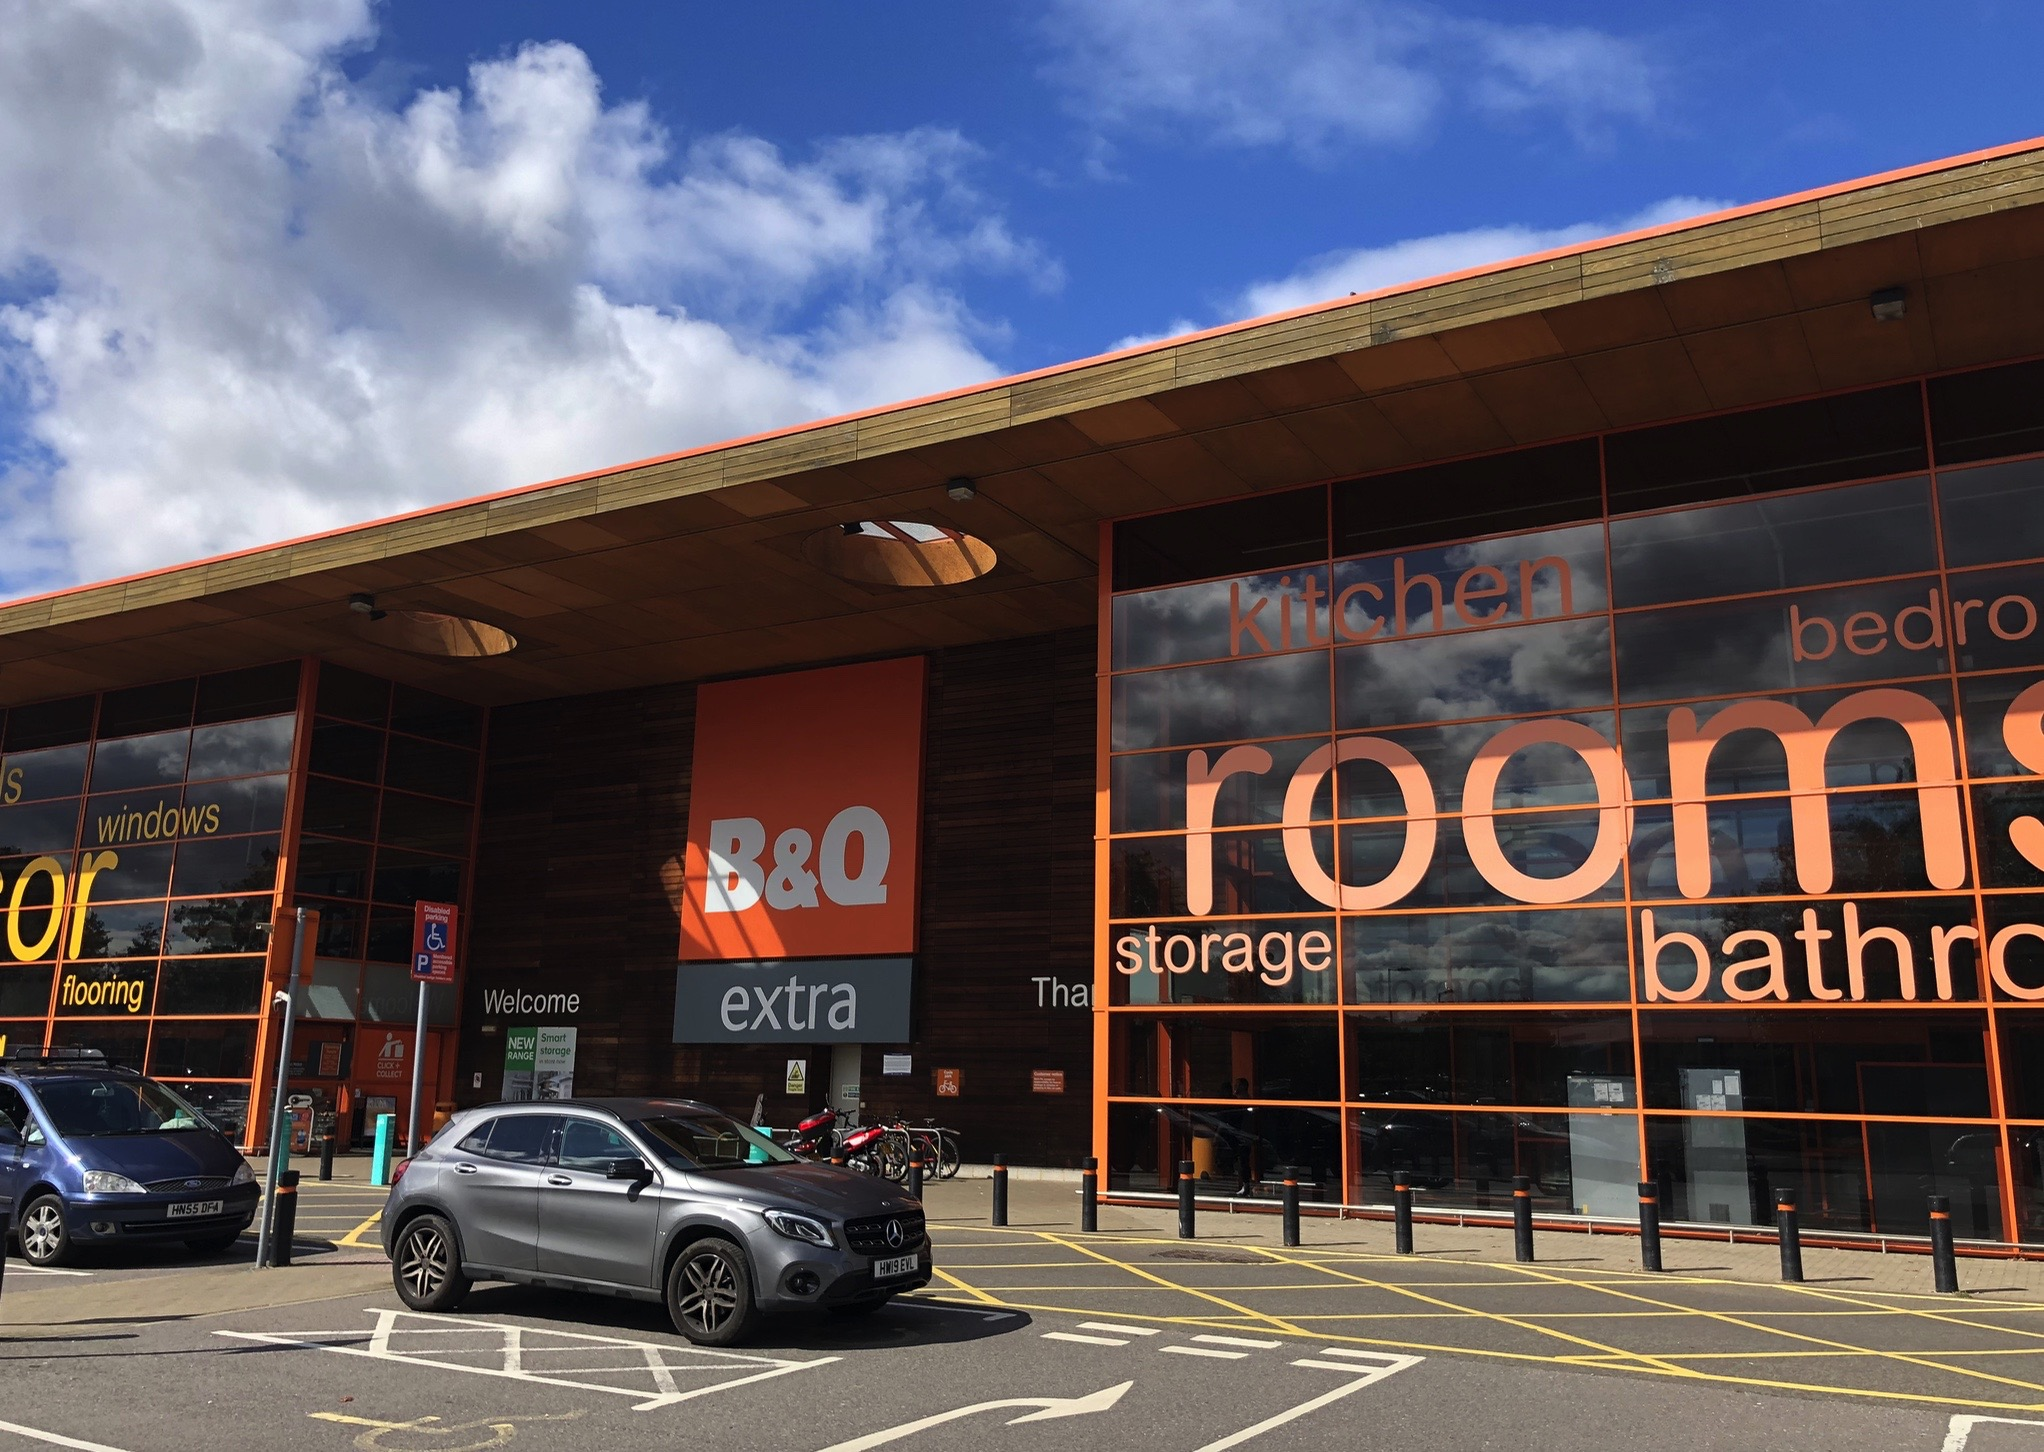 B&Q Survey reveals festive home improvement plans